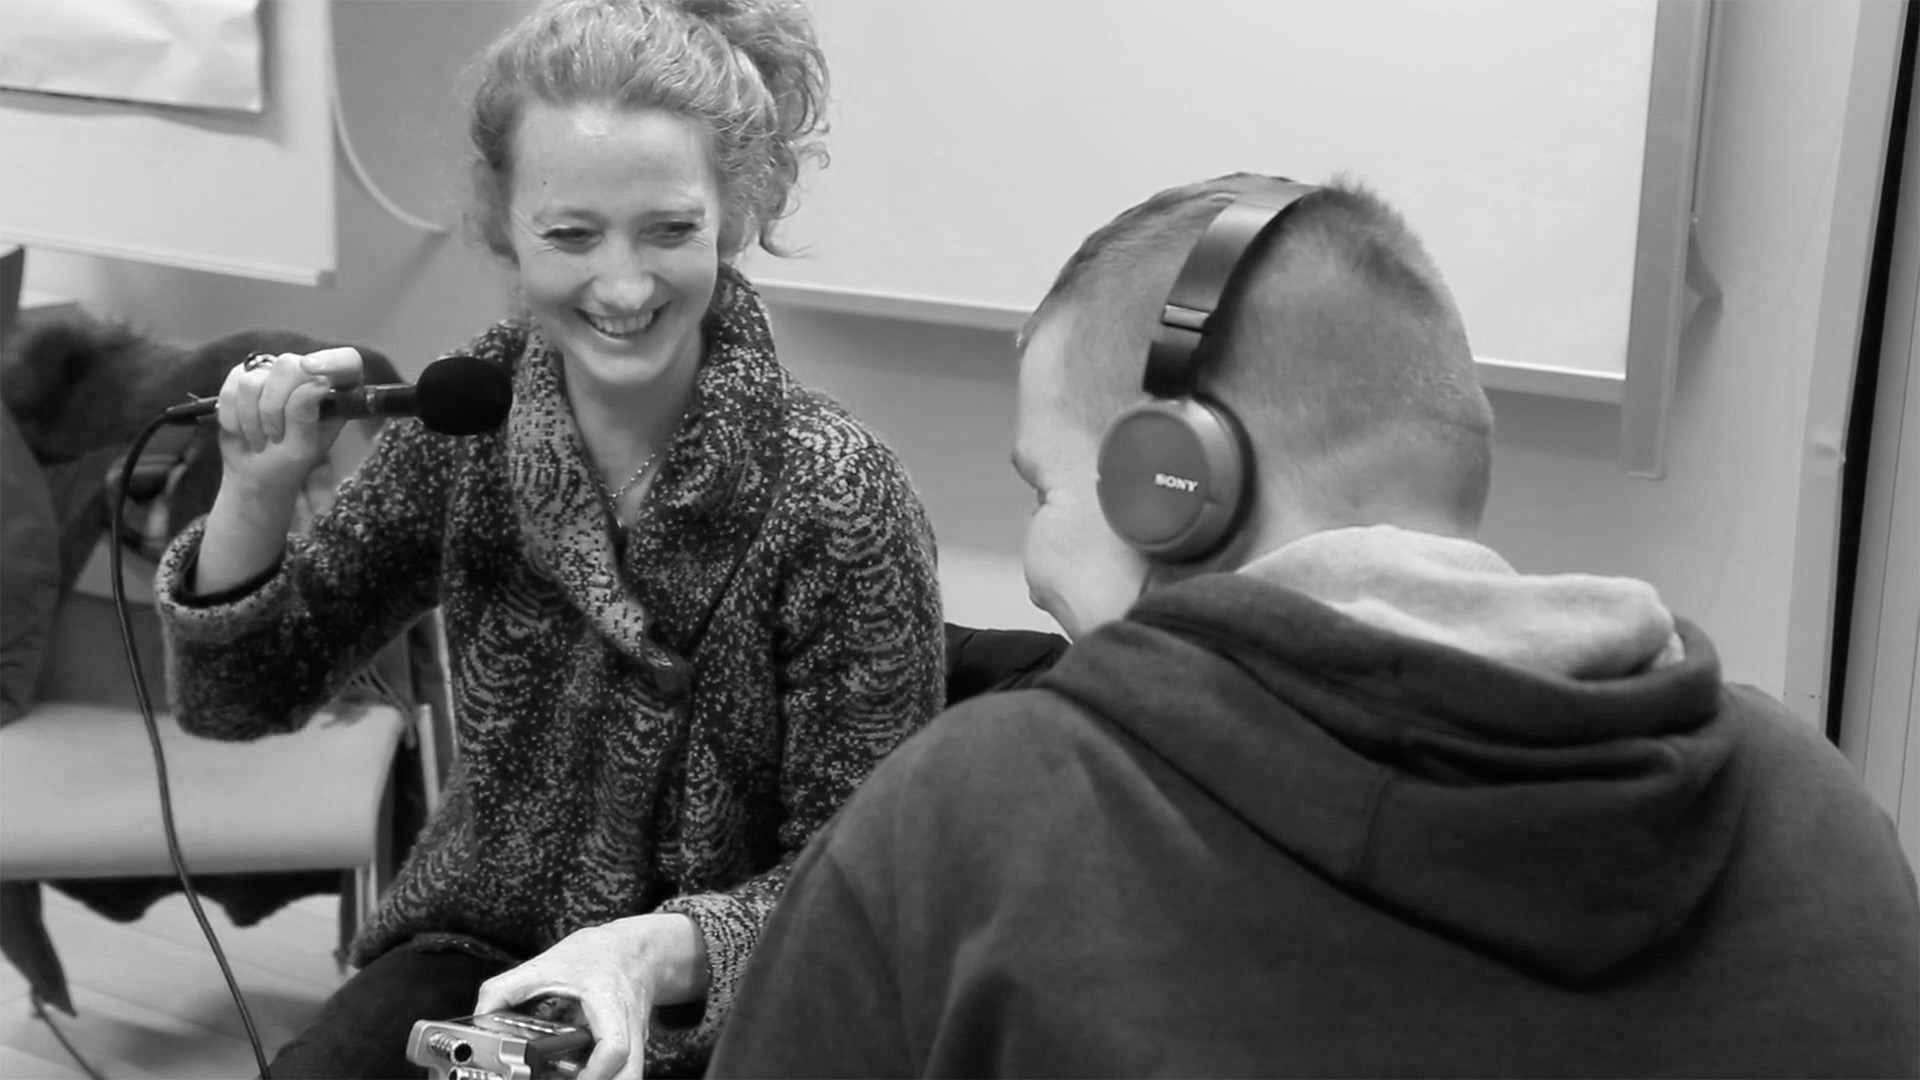 A Media Education staff member is smiling and holding a microphone while a participant in the foreground listens through headphones, black and white